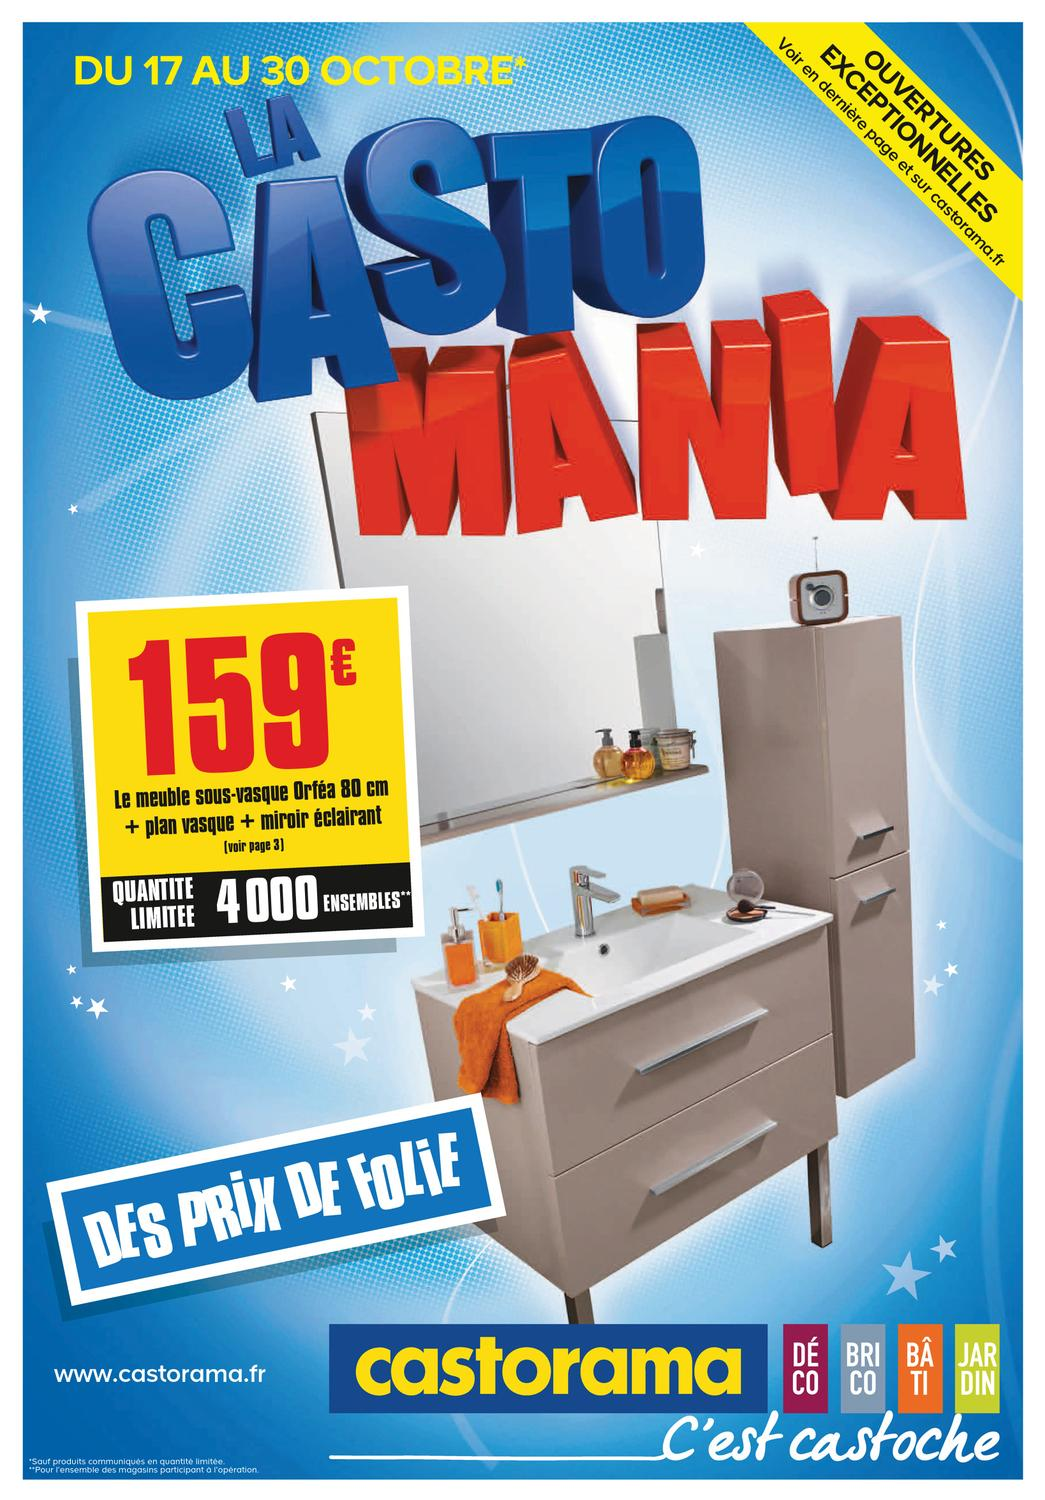 Castorama Catalogue 17 30 Octobre 2012 By Promocatalogues